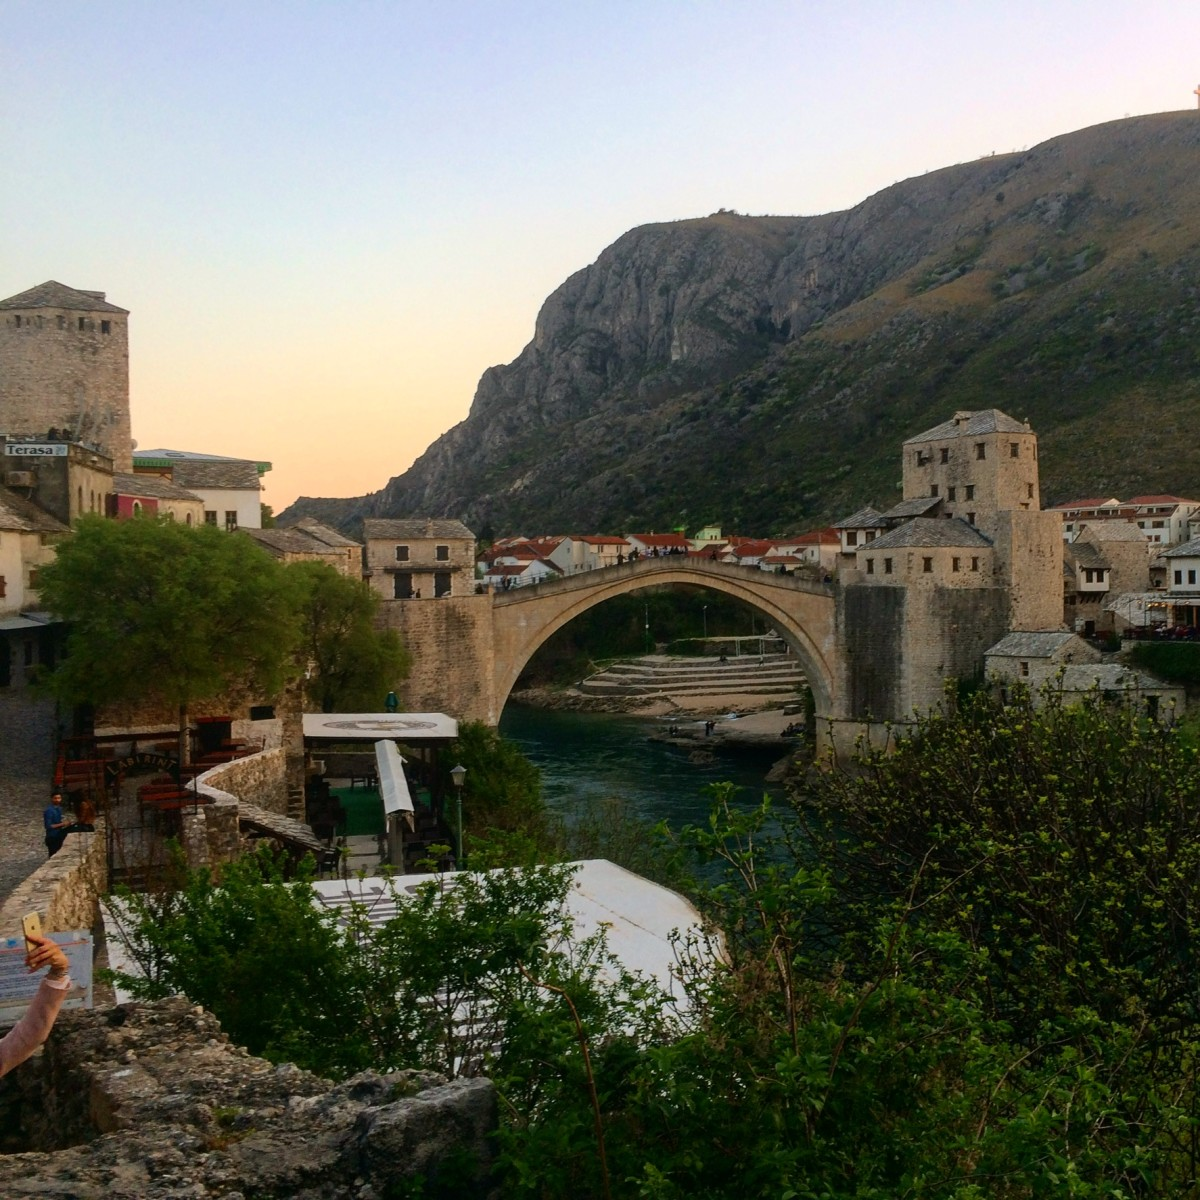 I loved Mostar, Bosnia. You know the trip was worth it when you're sad to leave!